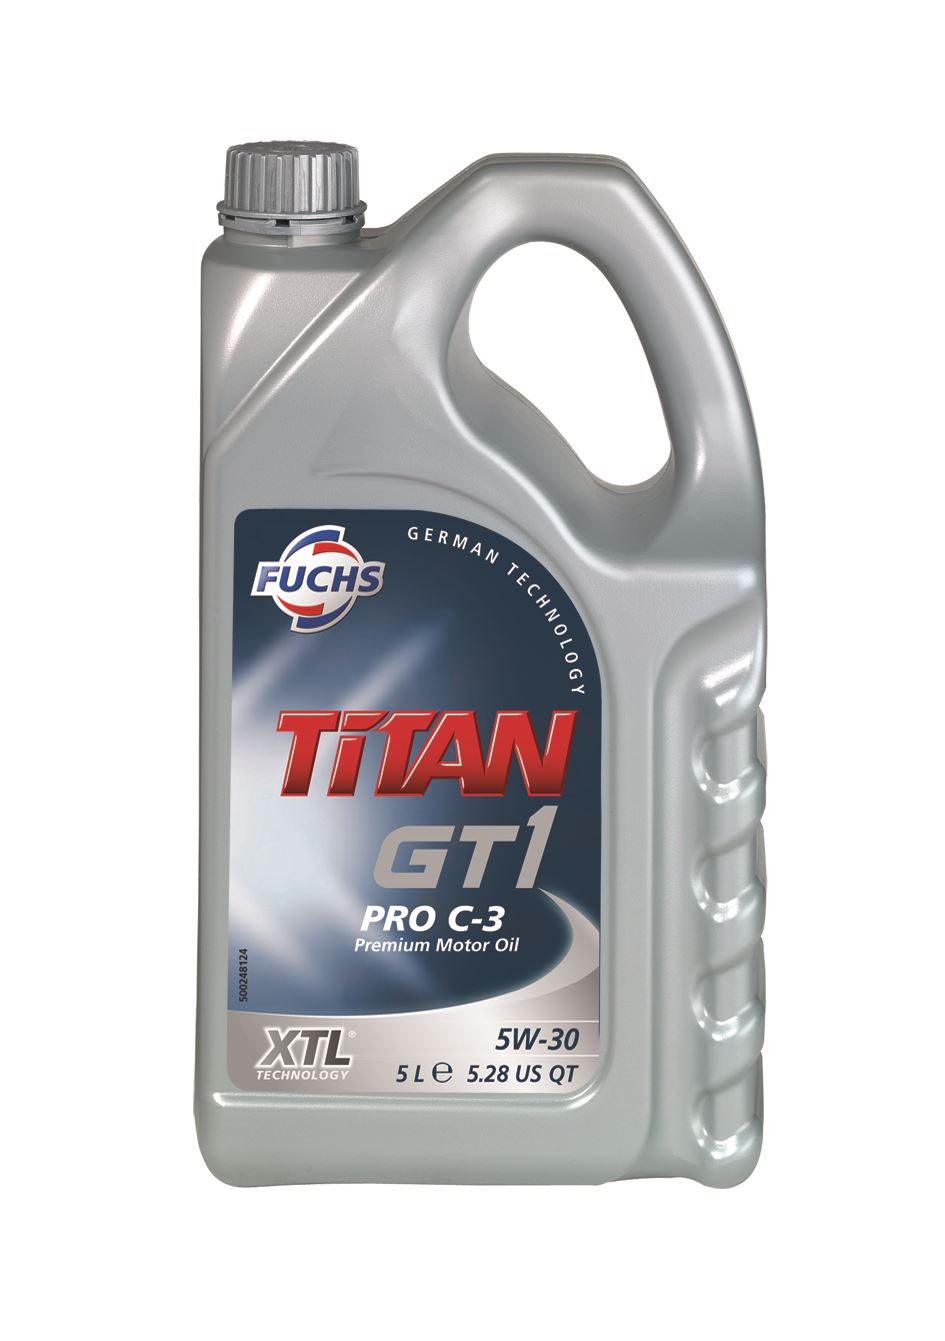 fuchs titan gt1 pro c 3 5w30 engine oil 5 litre bmw. Black Bedroom Furniture Sets. Home Design Ideas